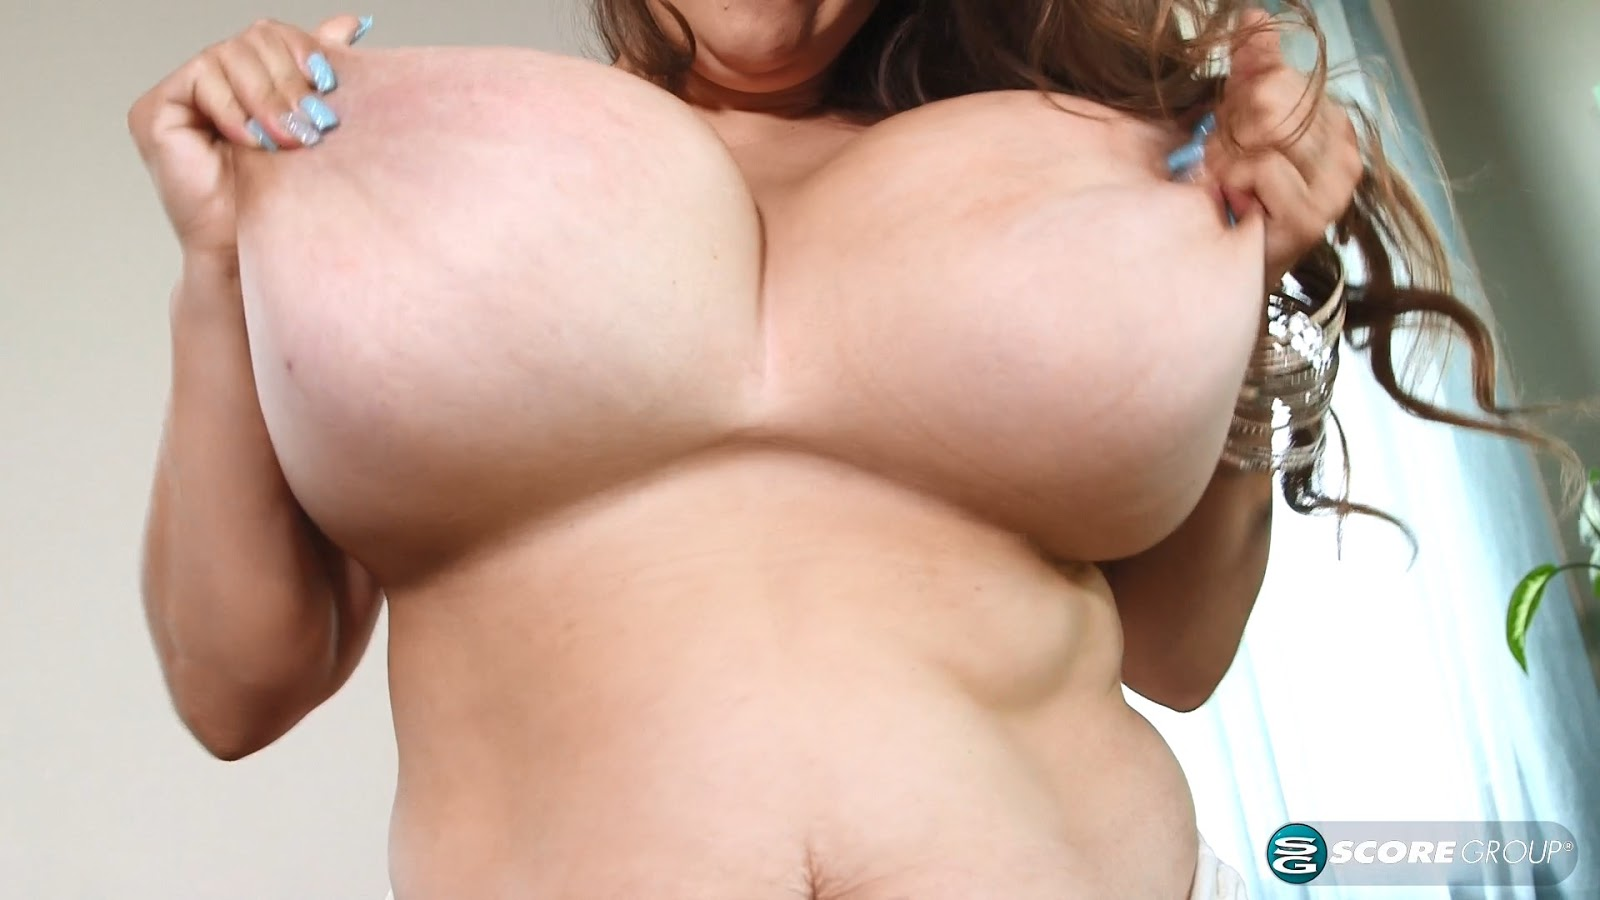 image Bbw and big tits fortune teller fucked vintage